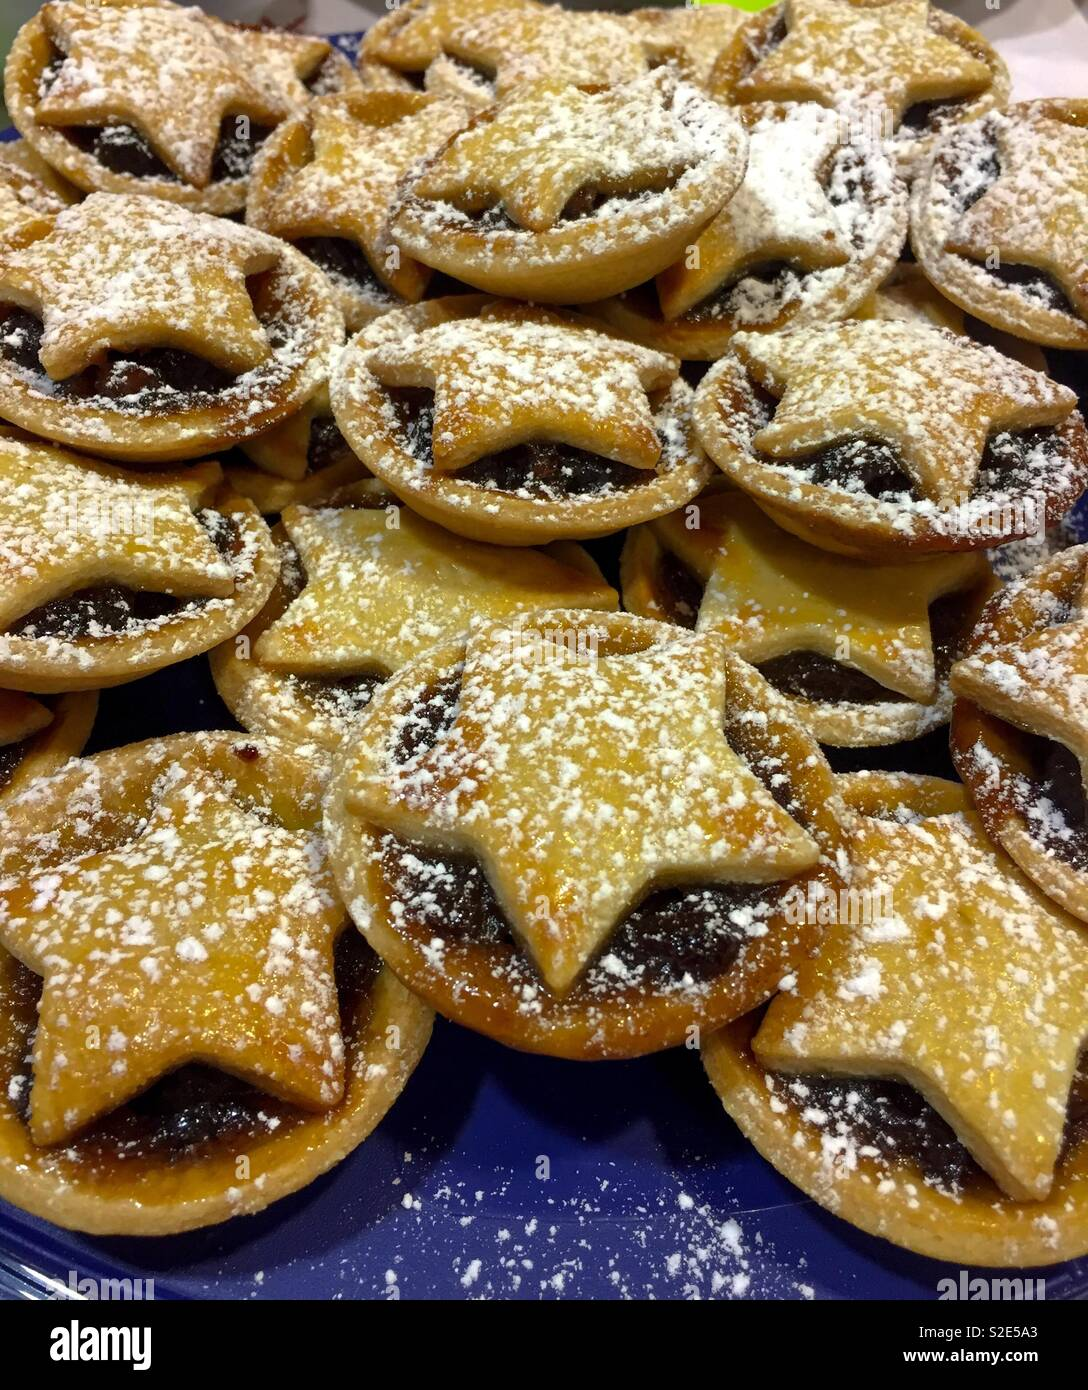 Home-made mince pies - Stock Image